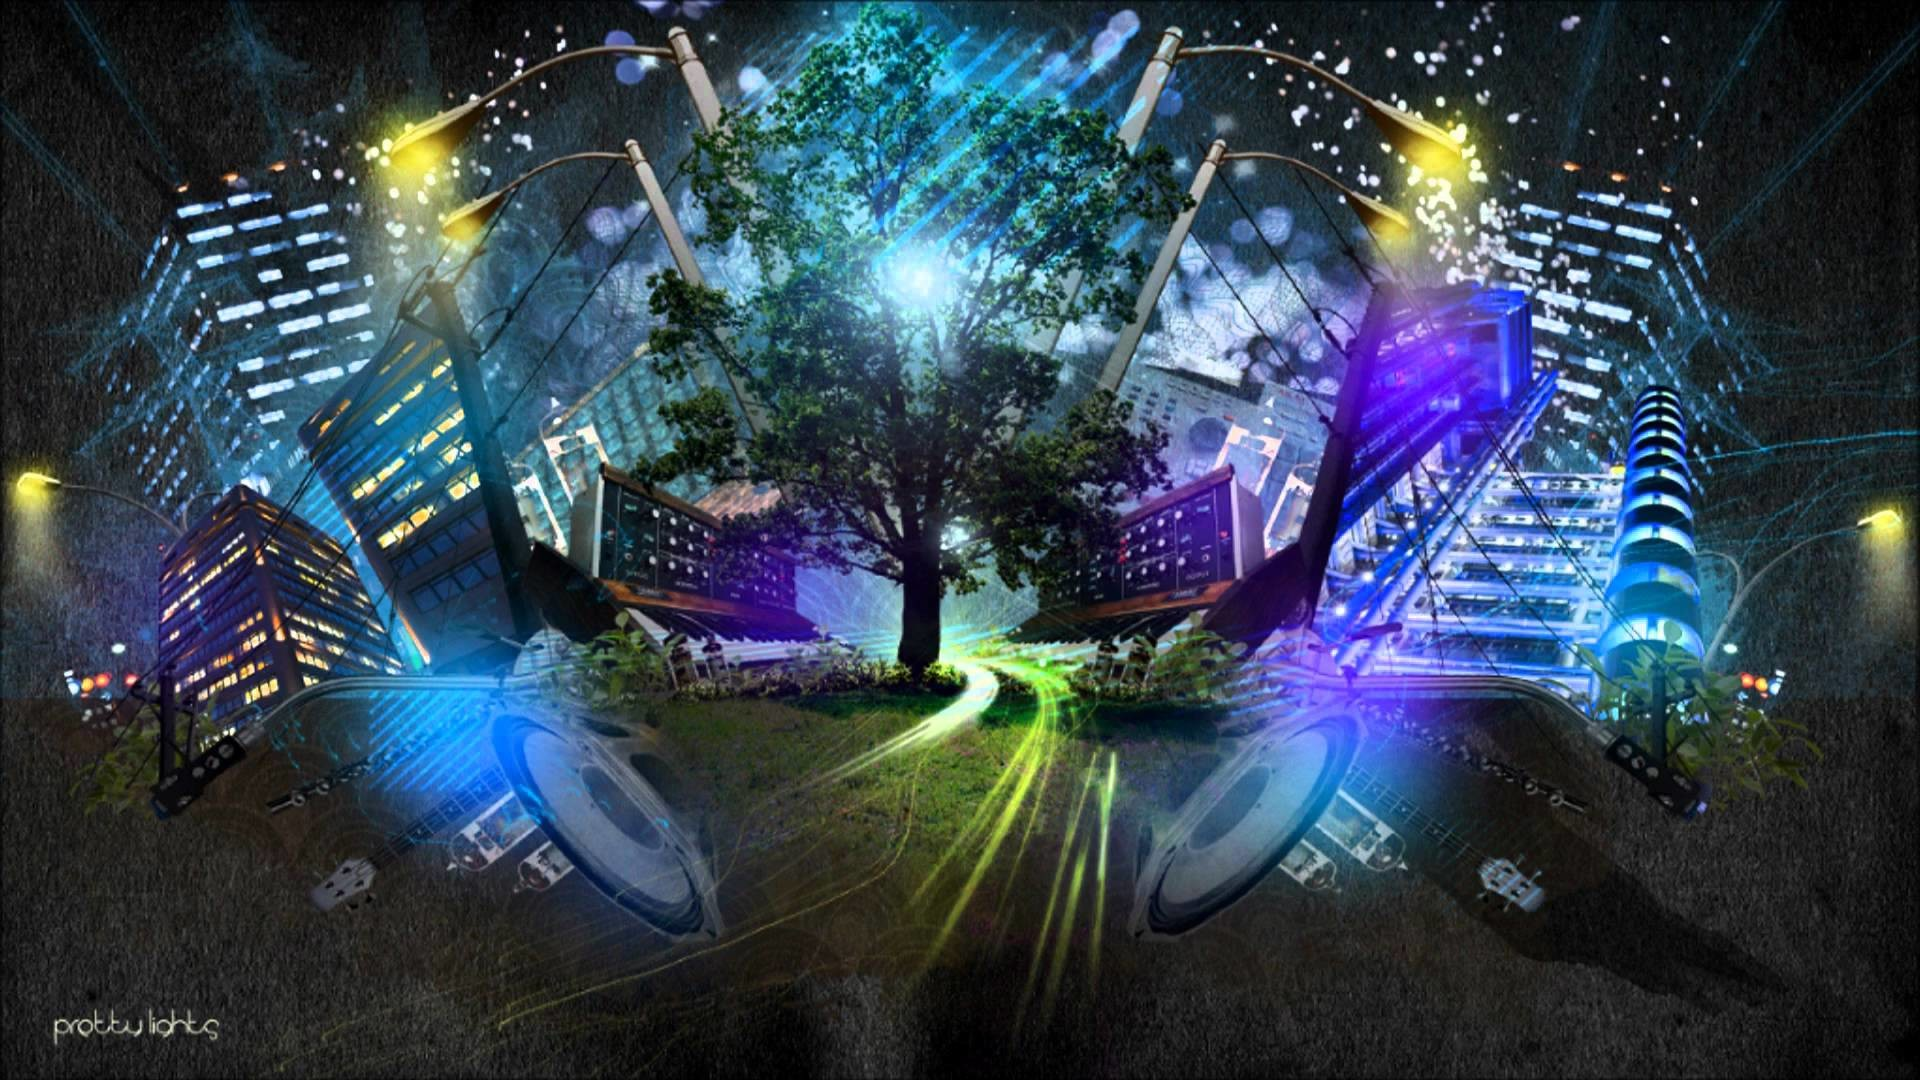 Pretty Lights Wallpaper 59 Images